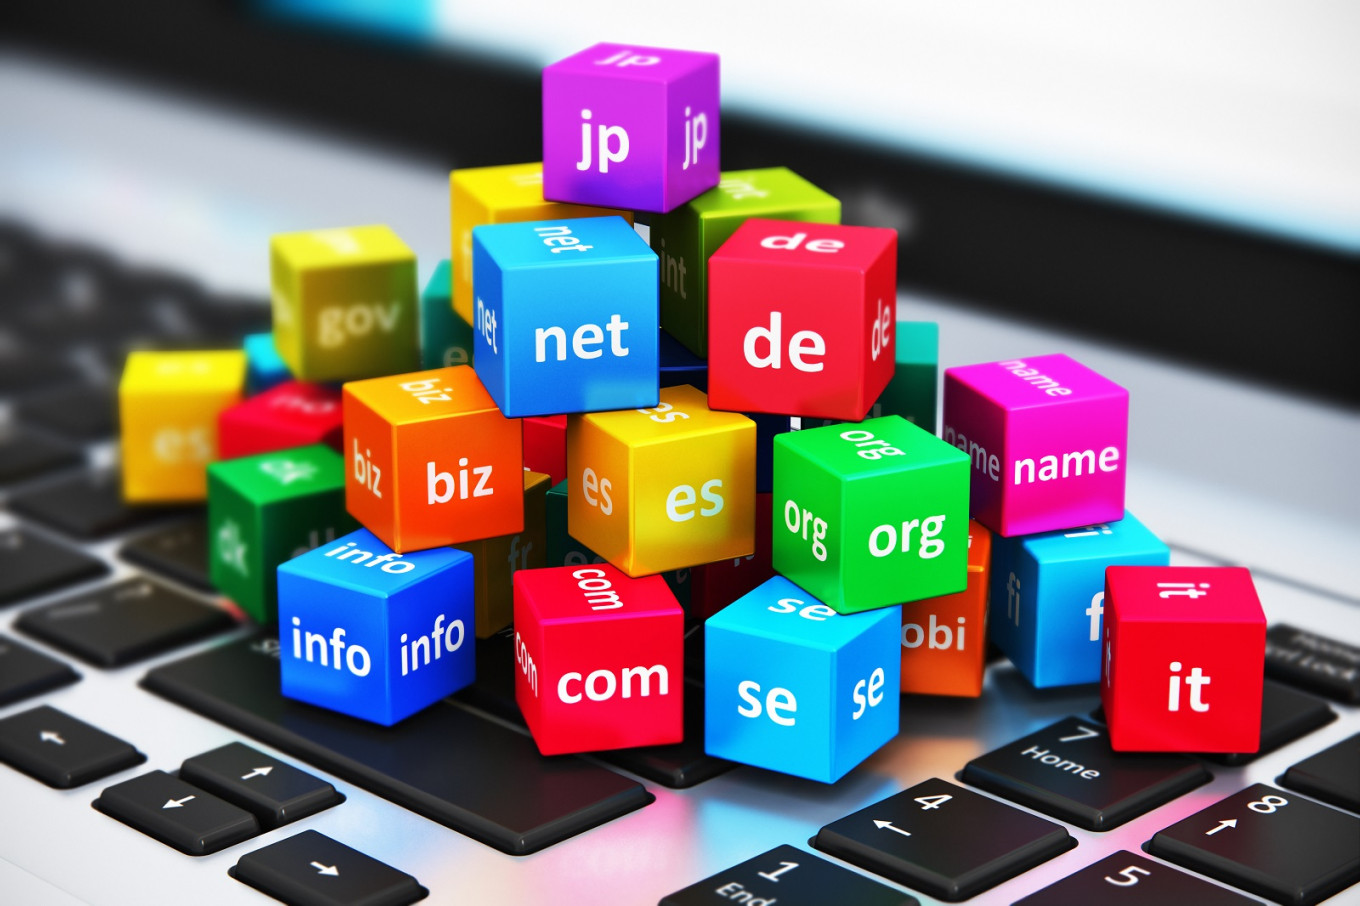 Indonesia's '.id' domain to expand into international market